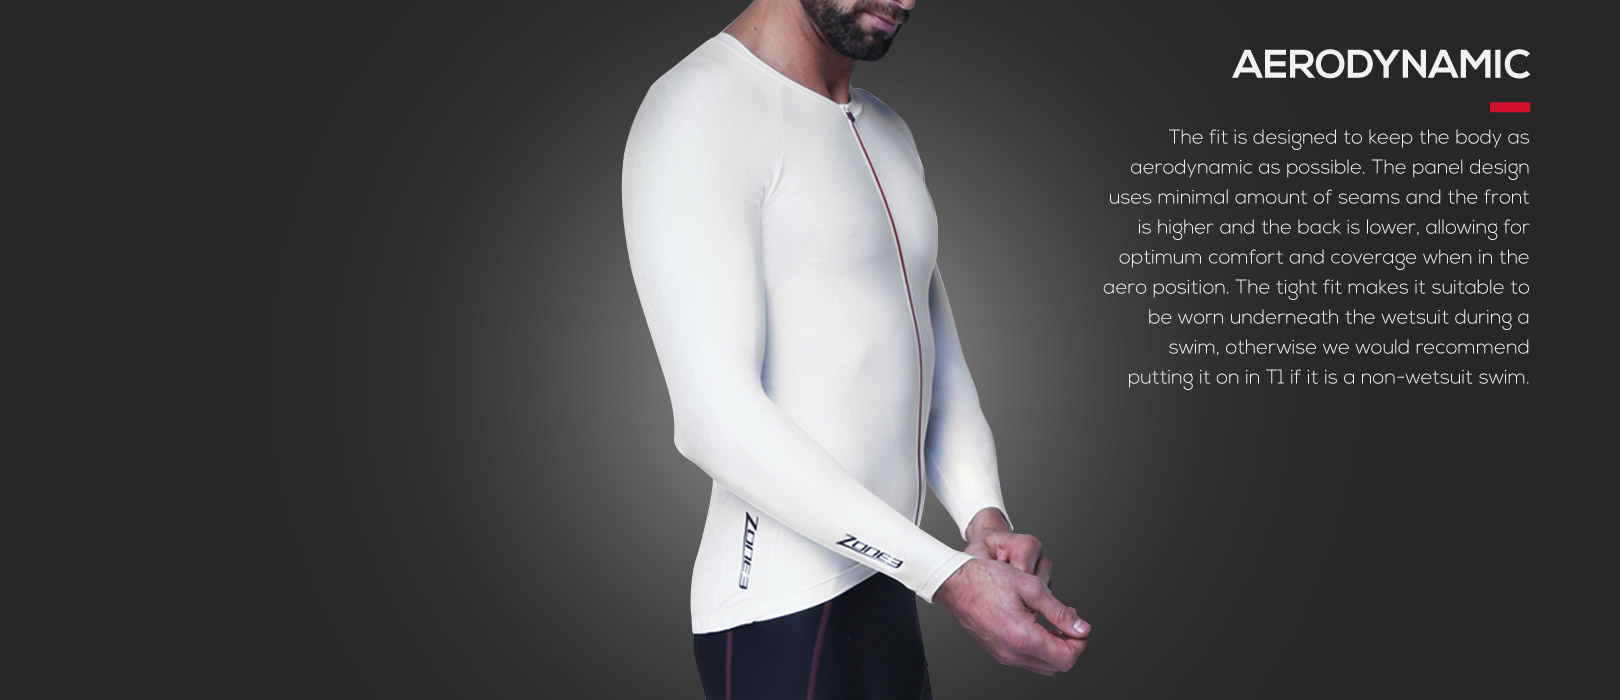 Mens-speed-top-with-Captions-002